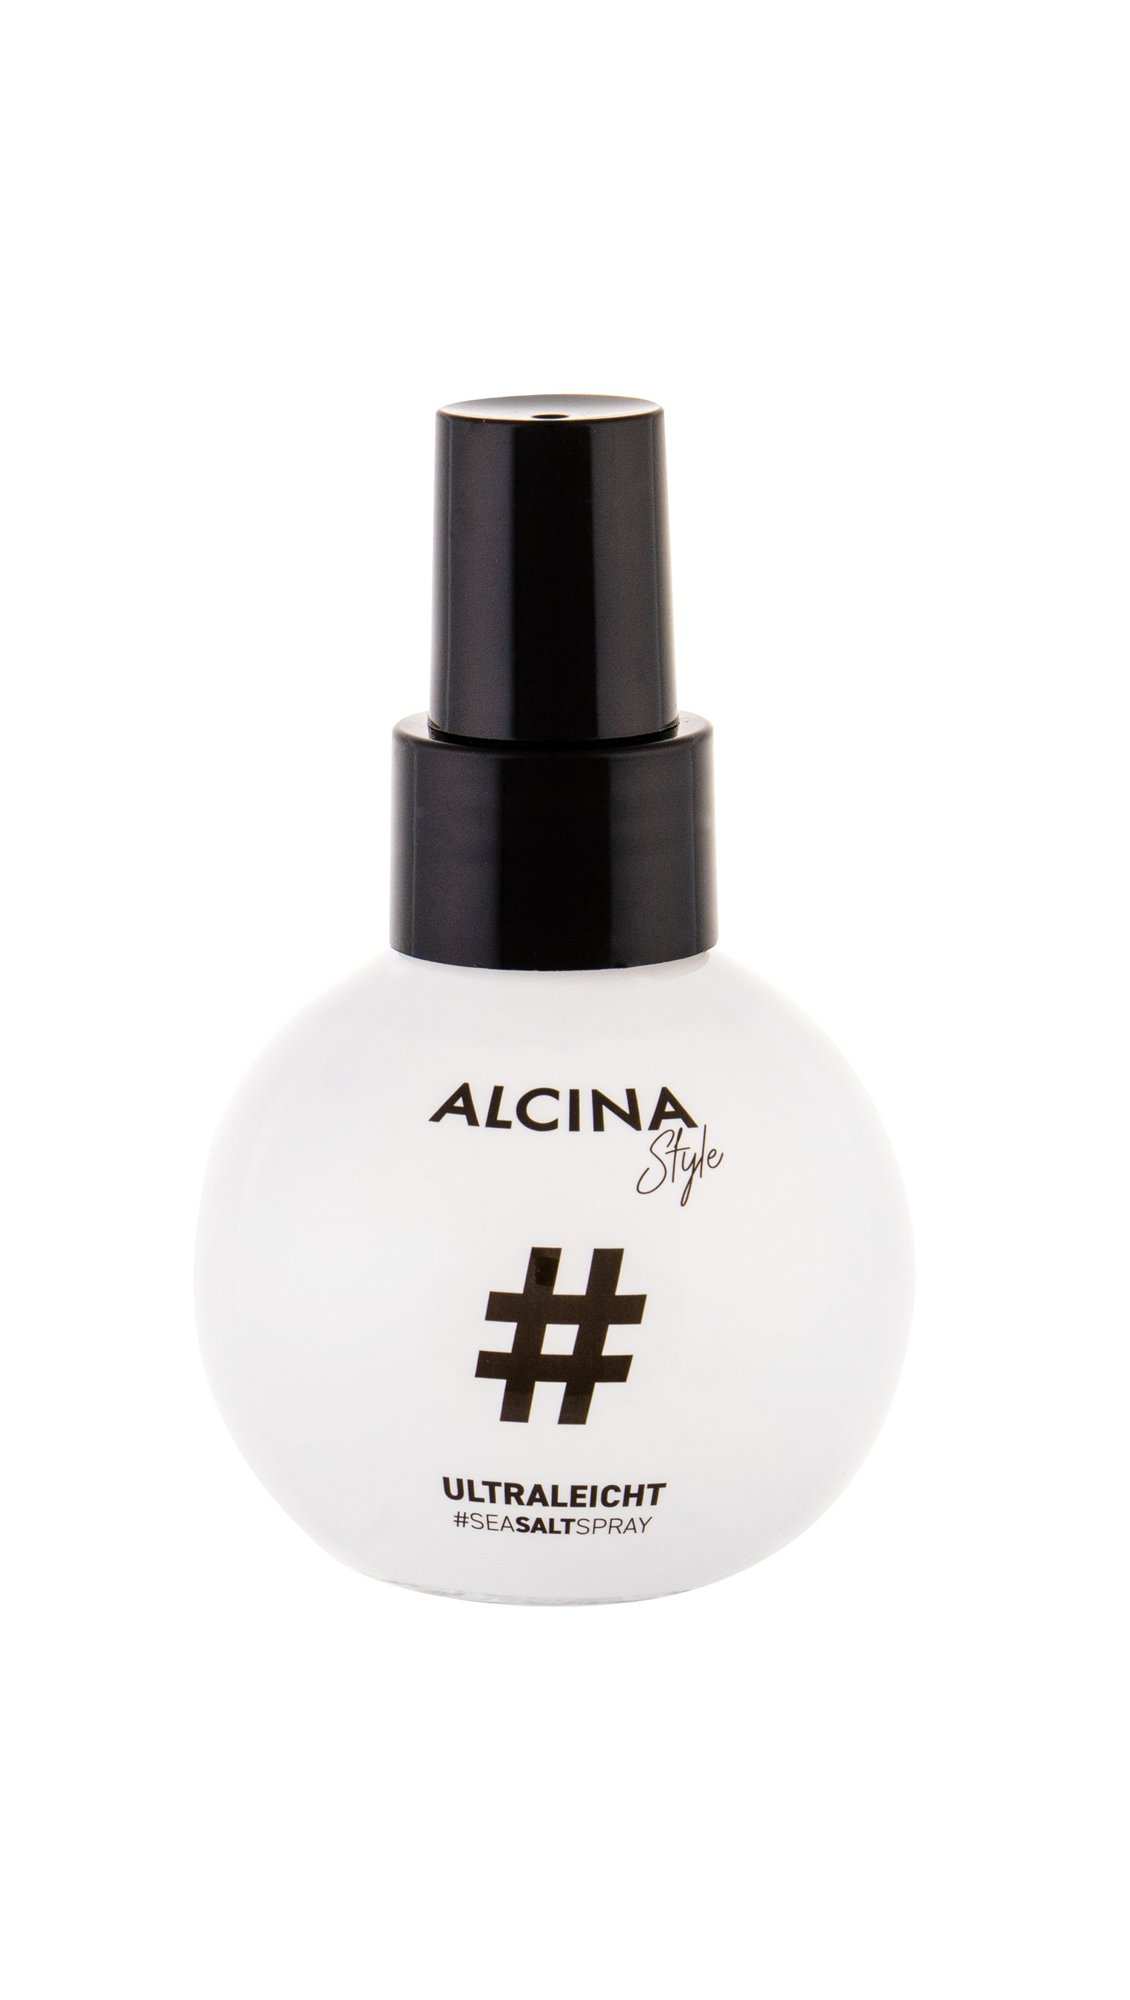 ALCINA #Alcina Style For Definition and Hair Styling 100ml  Extra-Light Sea Salt Spray